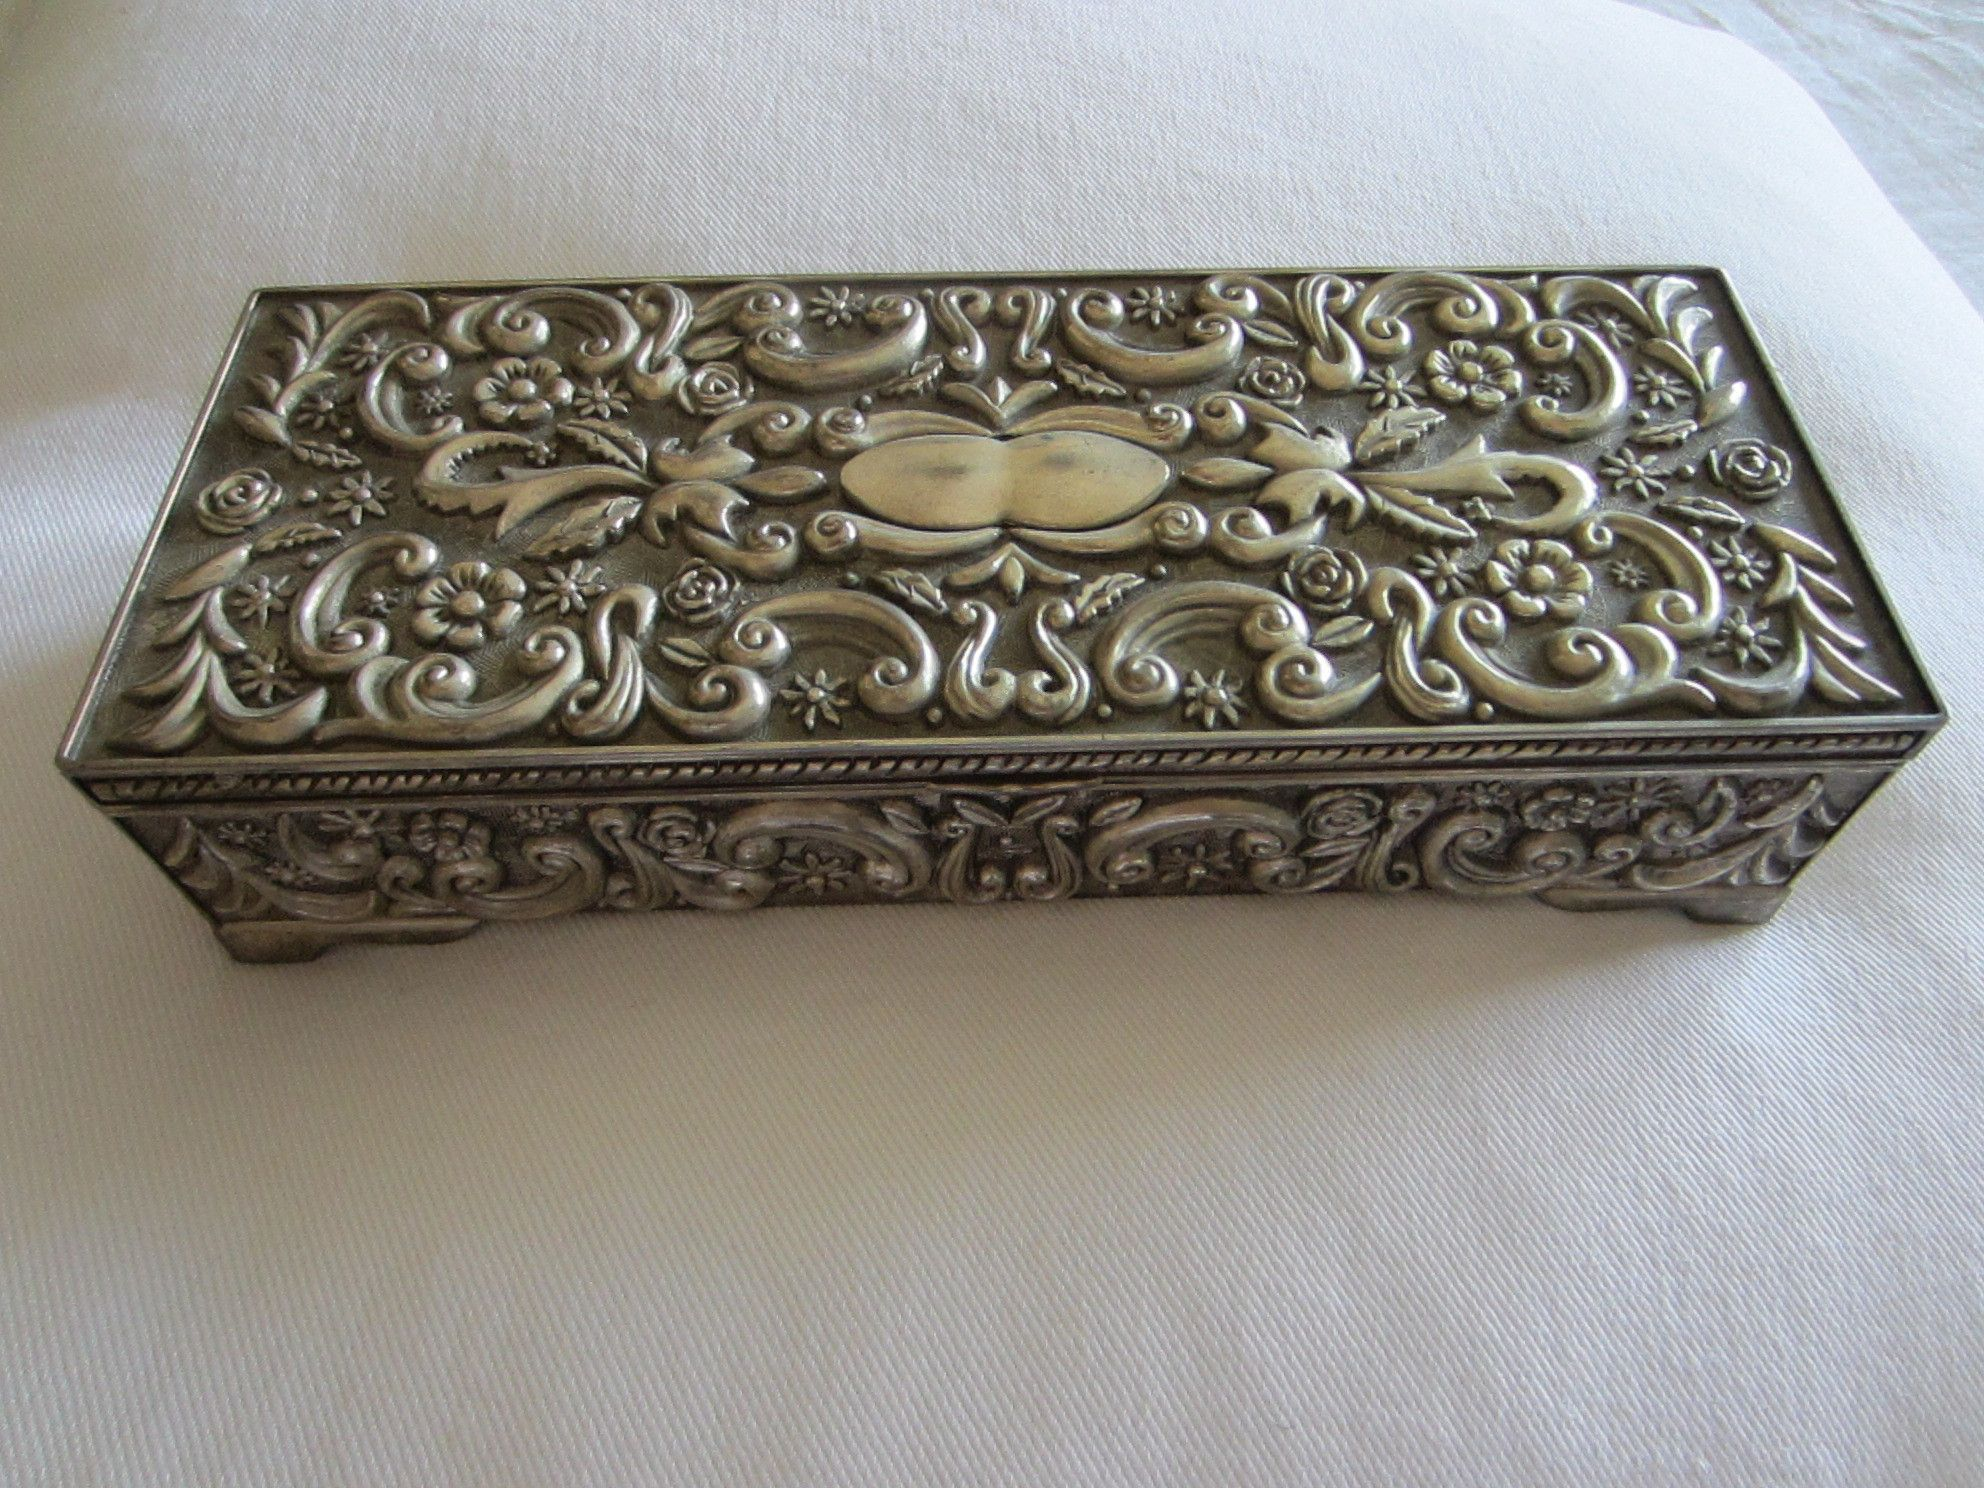 Godinger Silver Mirrored Sectional Jewelry Casket Floral Chasing